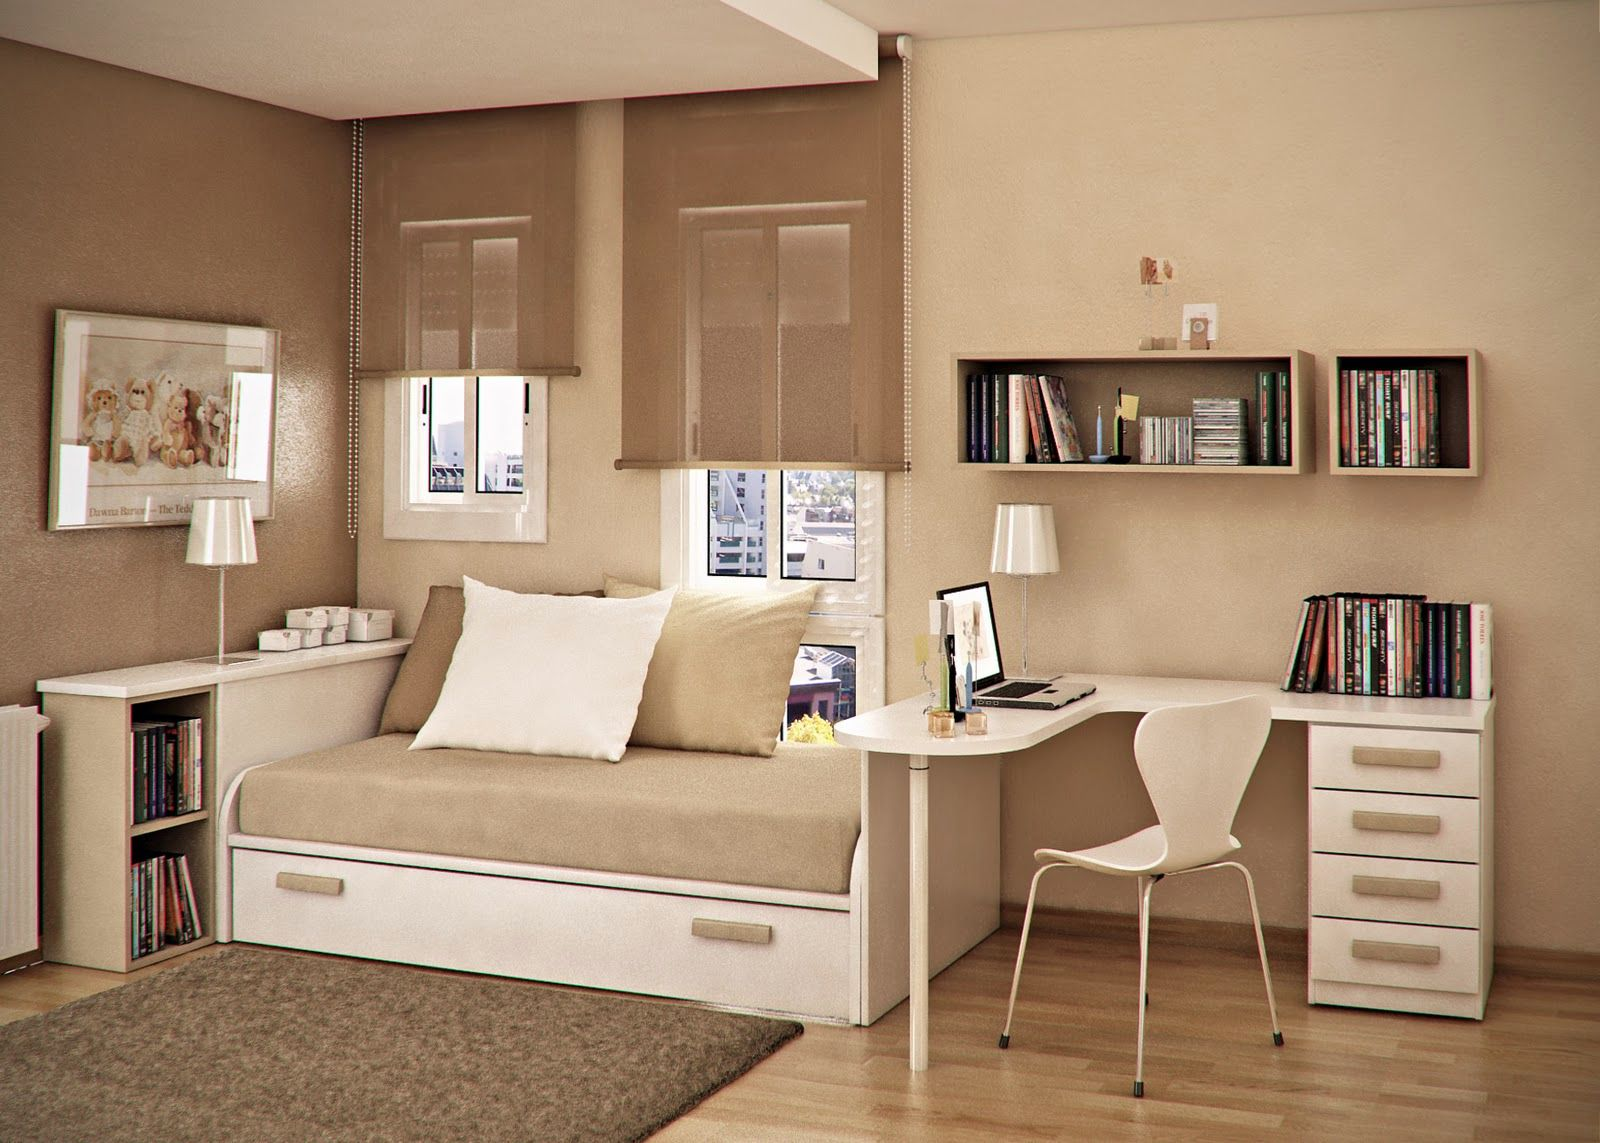 Cream Painted Wall and Wooden Flooring in Simple Teen Room Design Ideas with White Desk and Chair